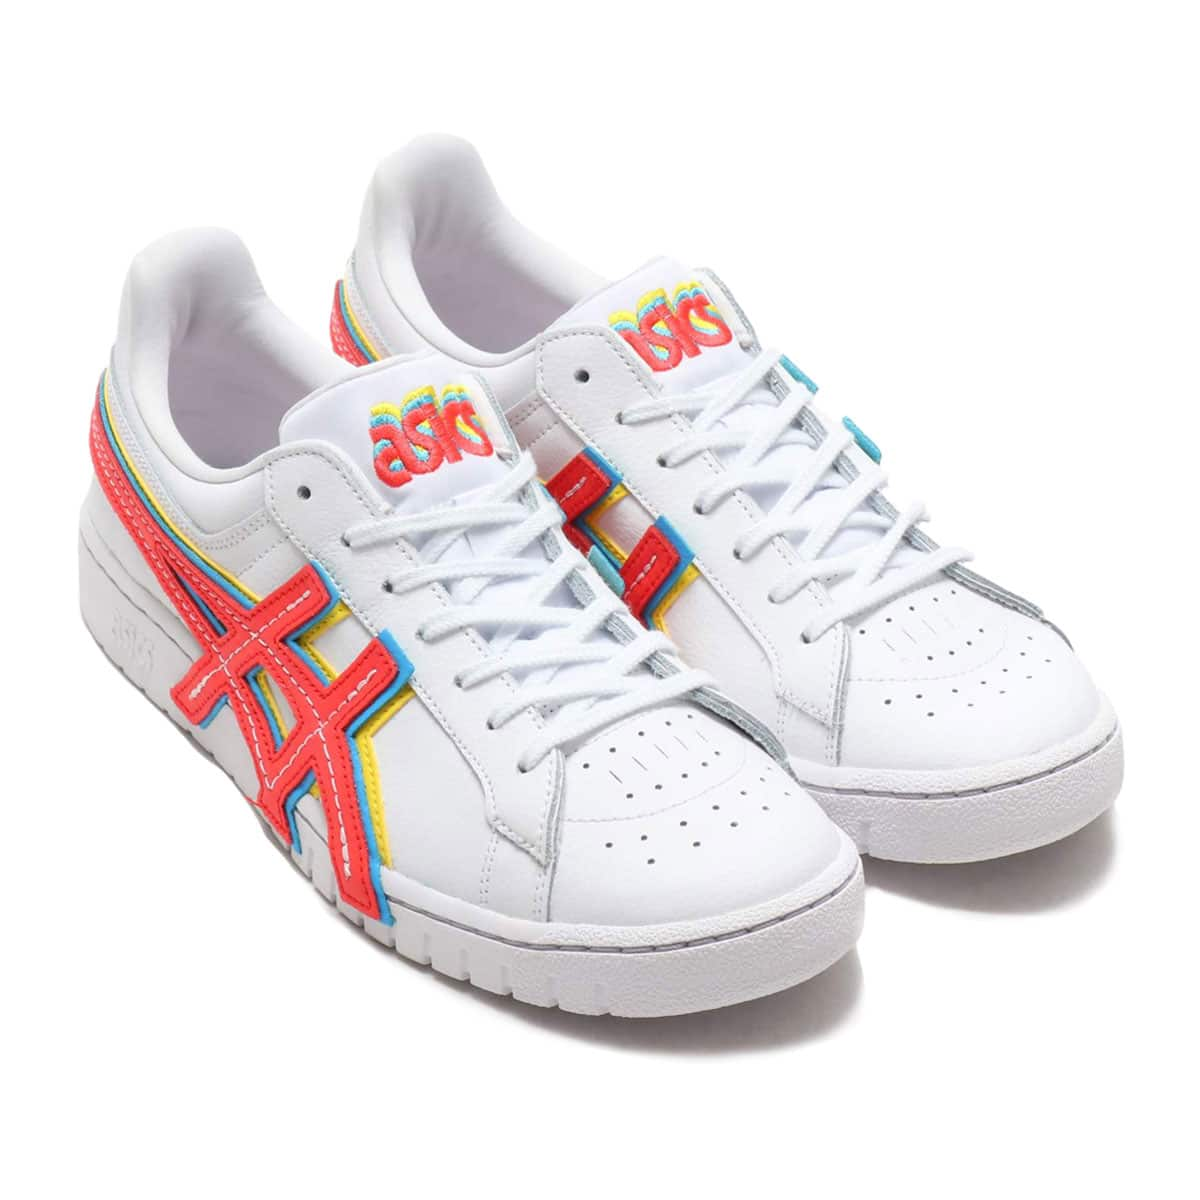 asics GEL-PTG 3 STRAND WHITE/RED 20SS-S_photo_large